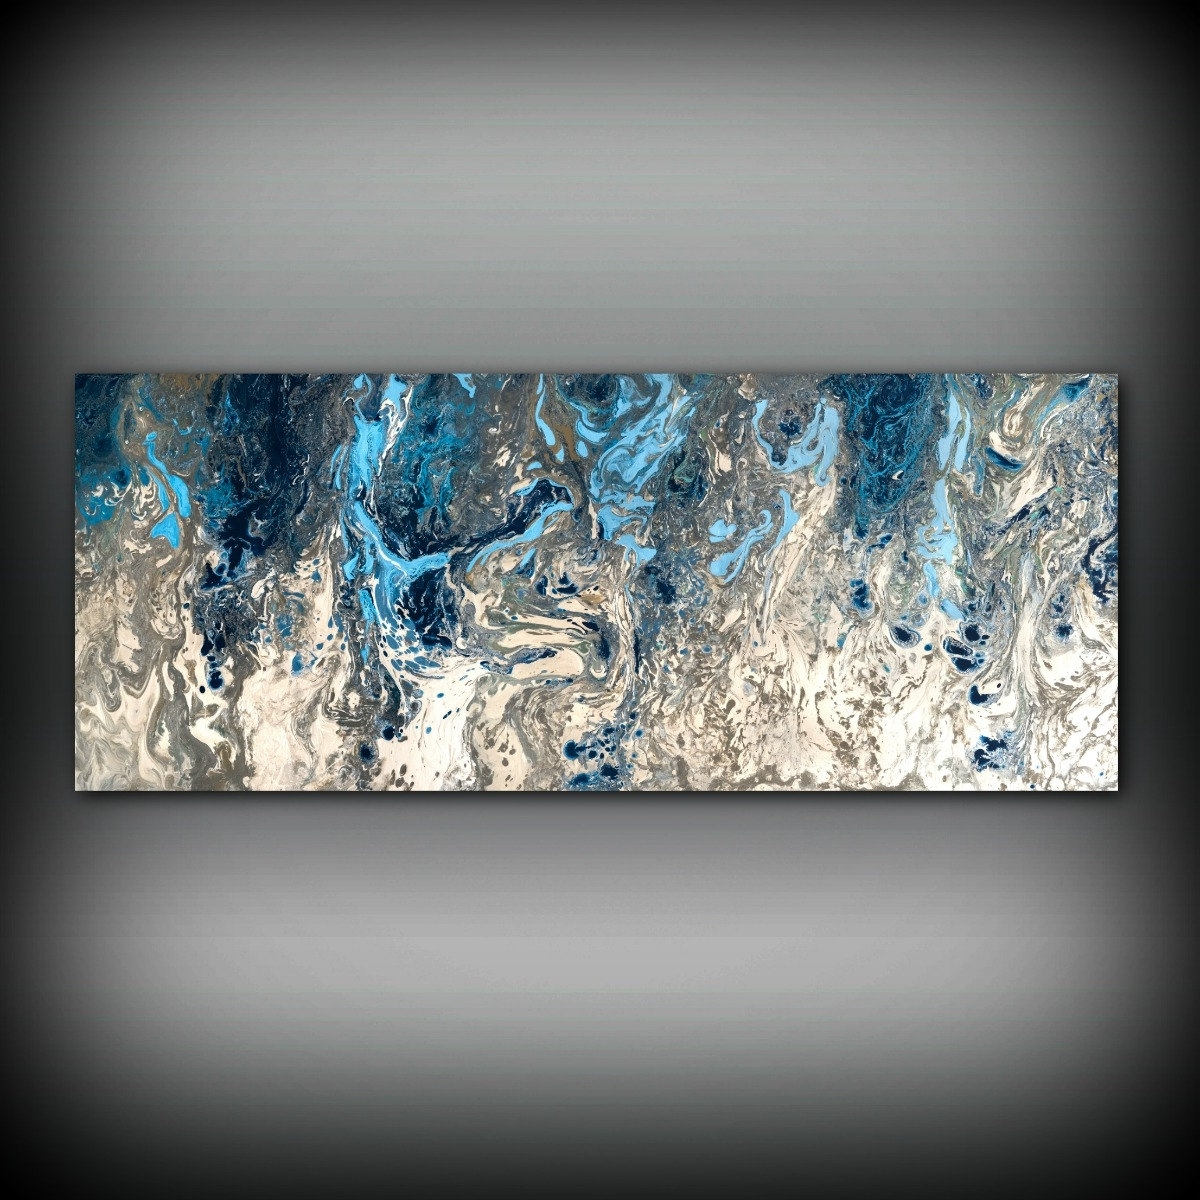 Dark Blue Abstract Wall Art Pertaining To Most Up To Date Large Abstract Painting Print Navy Blue Print Art Large Canvas Art (Gallery 1 of 15)